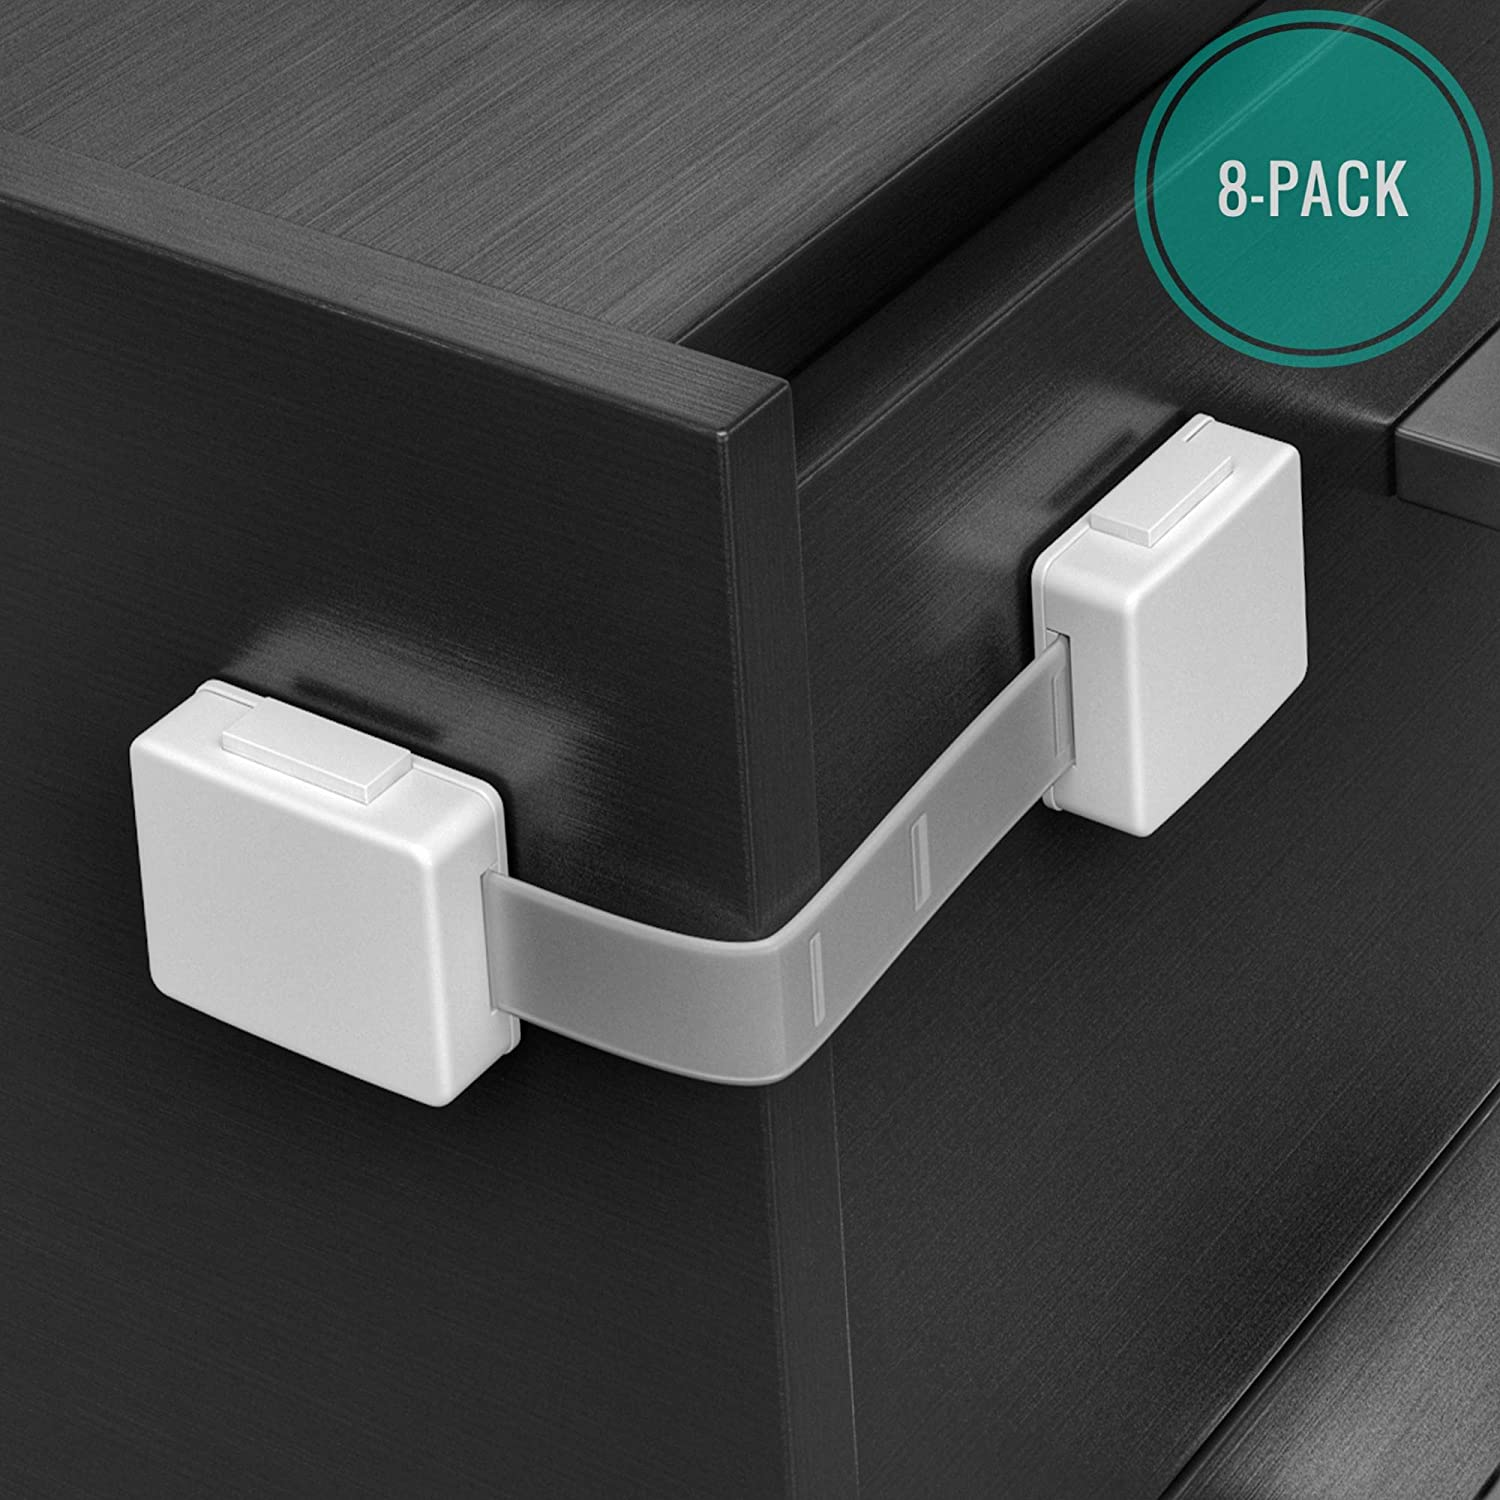 Skyla Homes - Cabinet Locks Child Safety (8-Pack), The Safest, Quickest and Easiest 3M Adhesive Baby Proofing Latches, No Screws or Magnets, Multi-Purpose for Furniture, Kitchen, Ovens, Toilet Seats